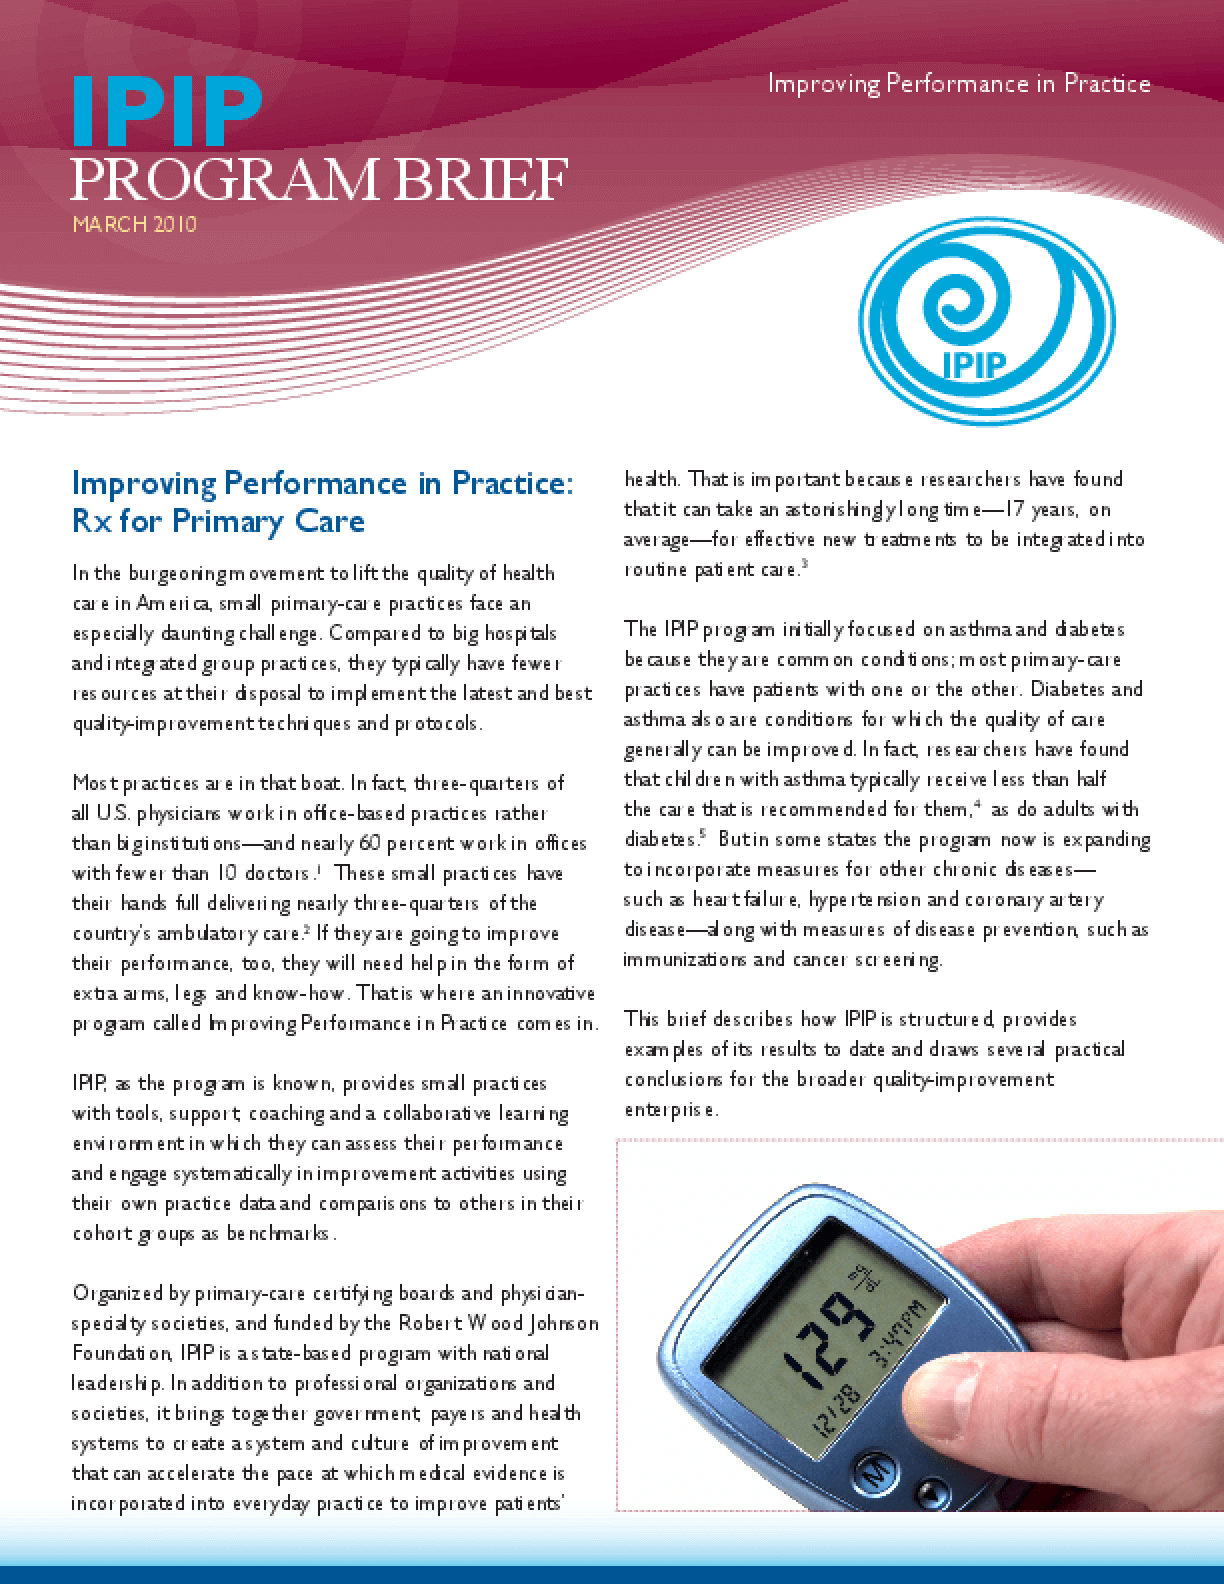 Improving Performance in Practice: Rx for Primary Care